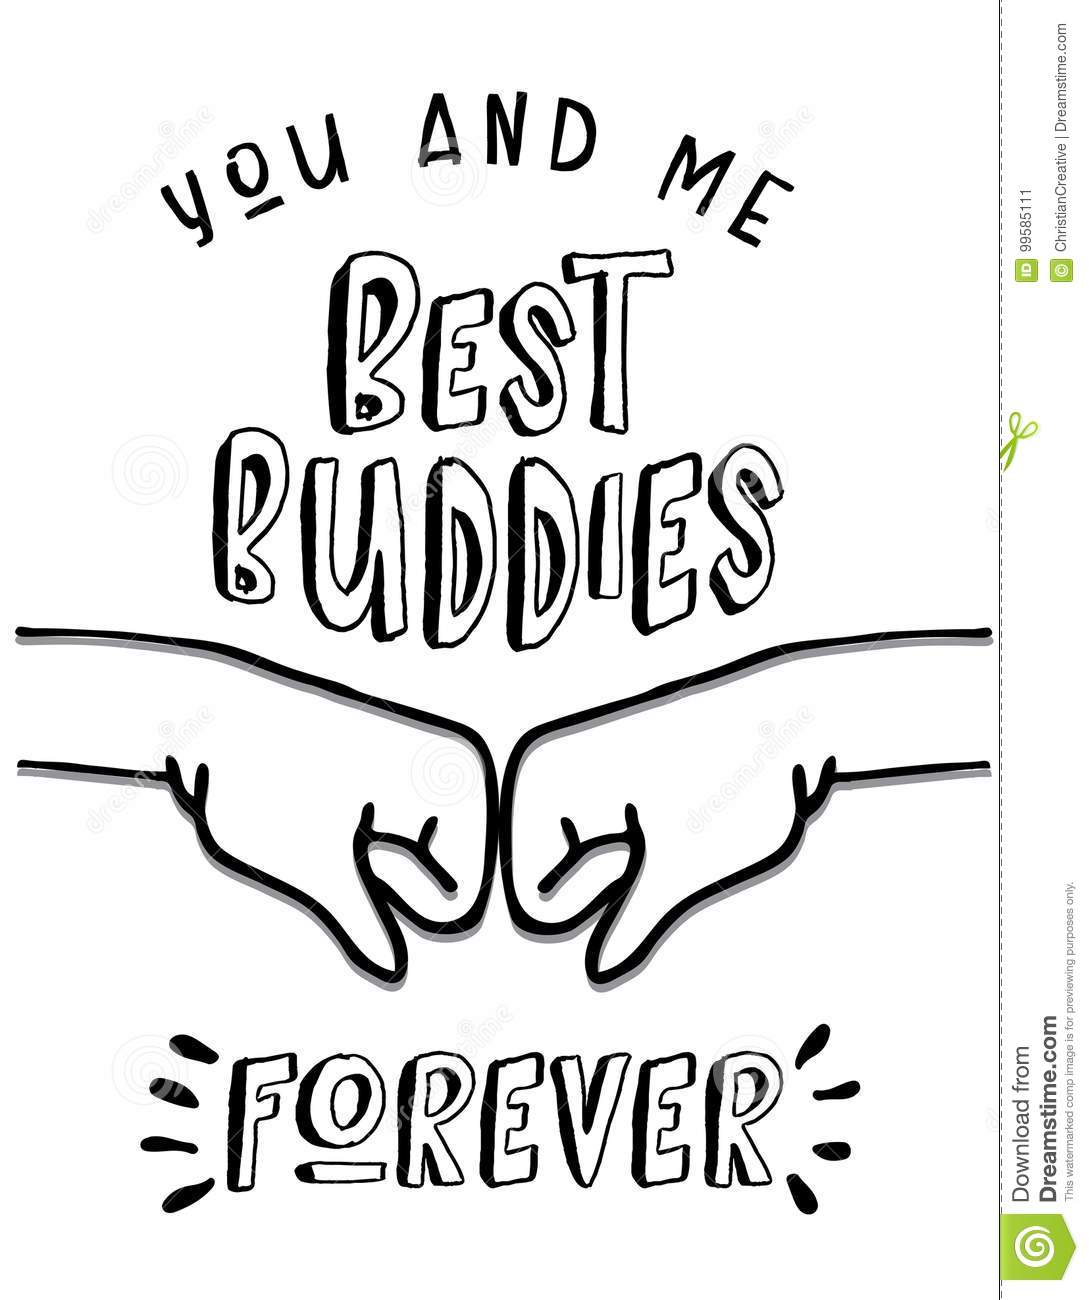 You And Me Best Buddies Forever Stock Vector